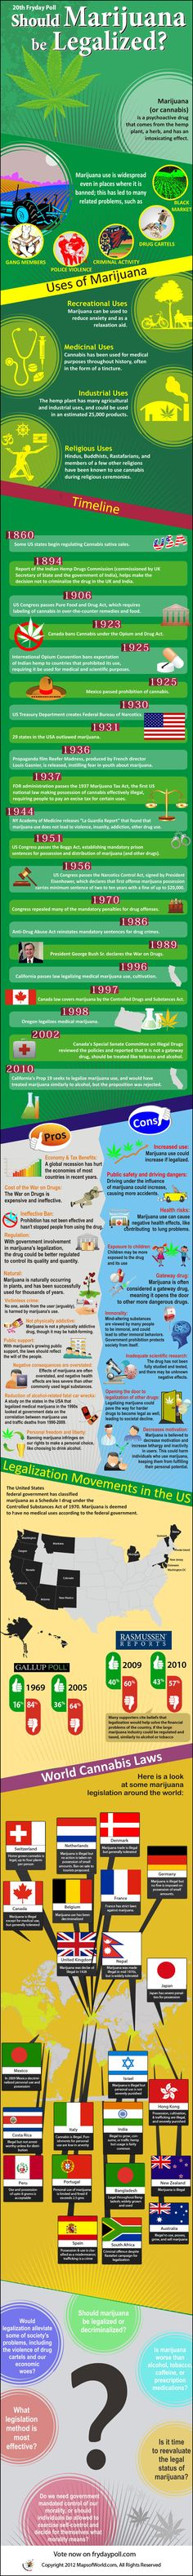 Find In-Depth Review And #Infographic On The Legalization of #Marijuana. Learn more about the uses of Marijuana, the history and timeline, pros and cons of marijuana legalization, world cannabis laws and more. Is it time reevaluate the legal status of marijuana? Vote Now